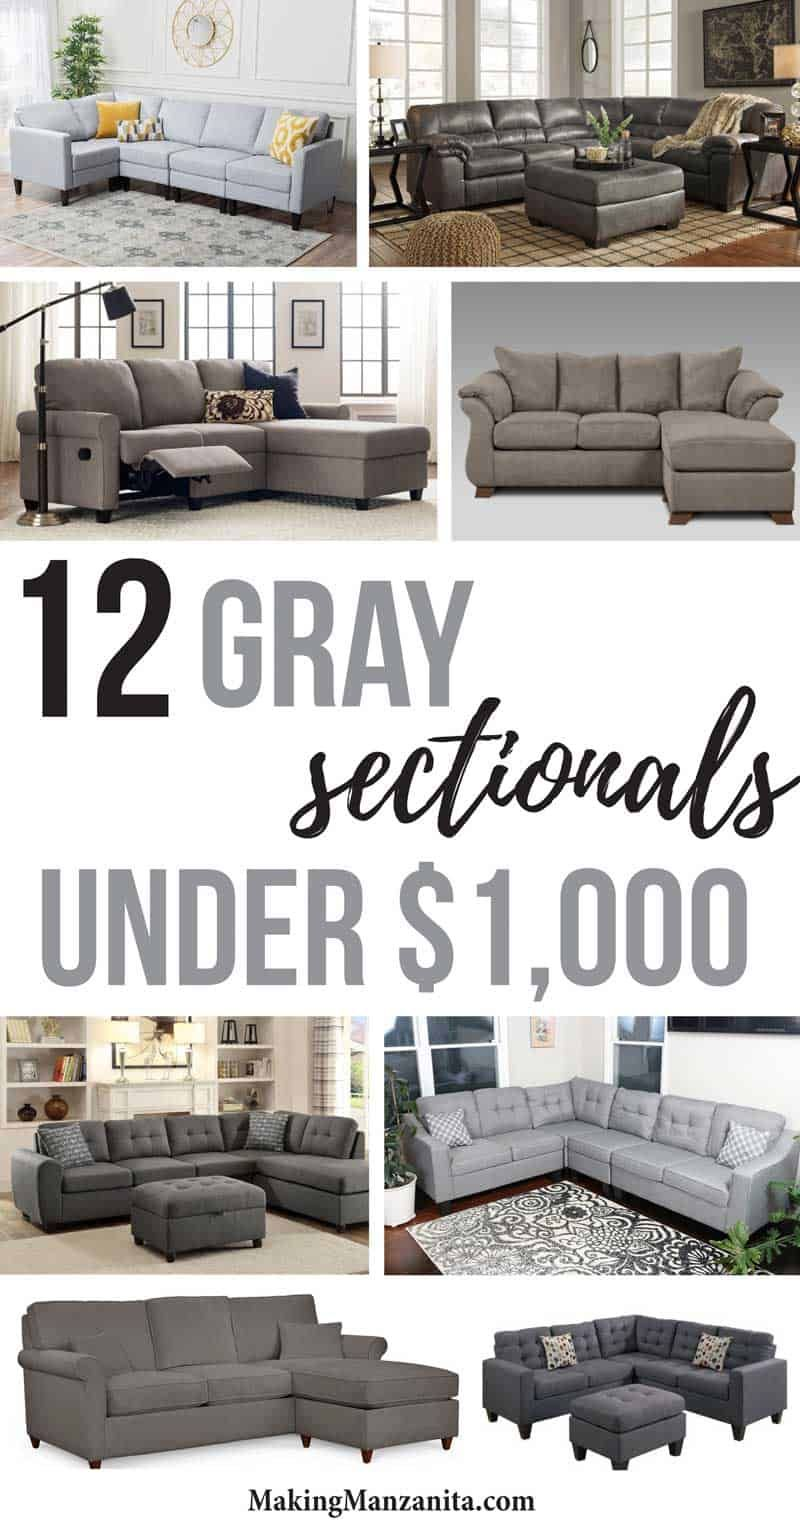 10 Cheap Sectionals Under 1000 In Gray Making Manzanita Affordable Sofa Farm House Living Room Cheap Living Room Furniture